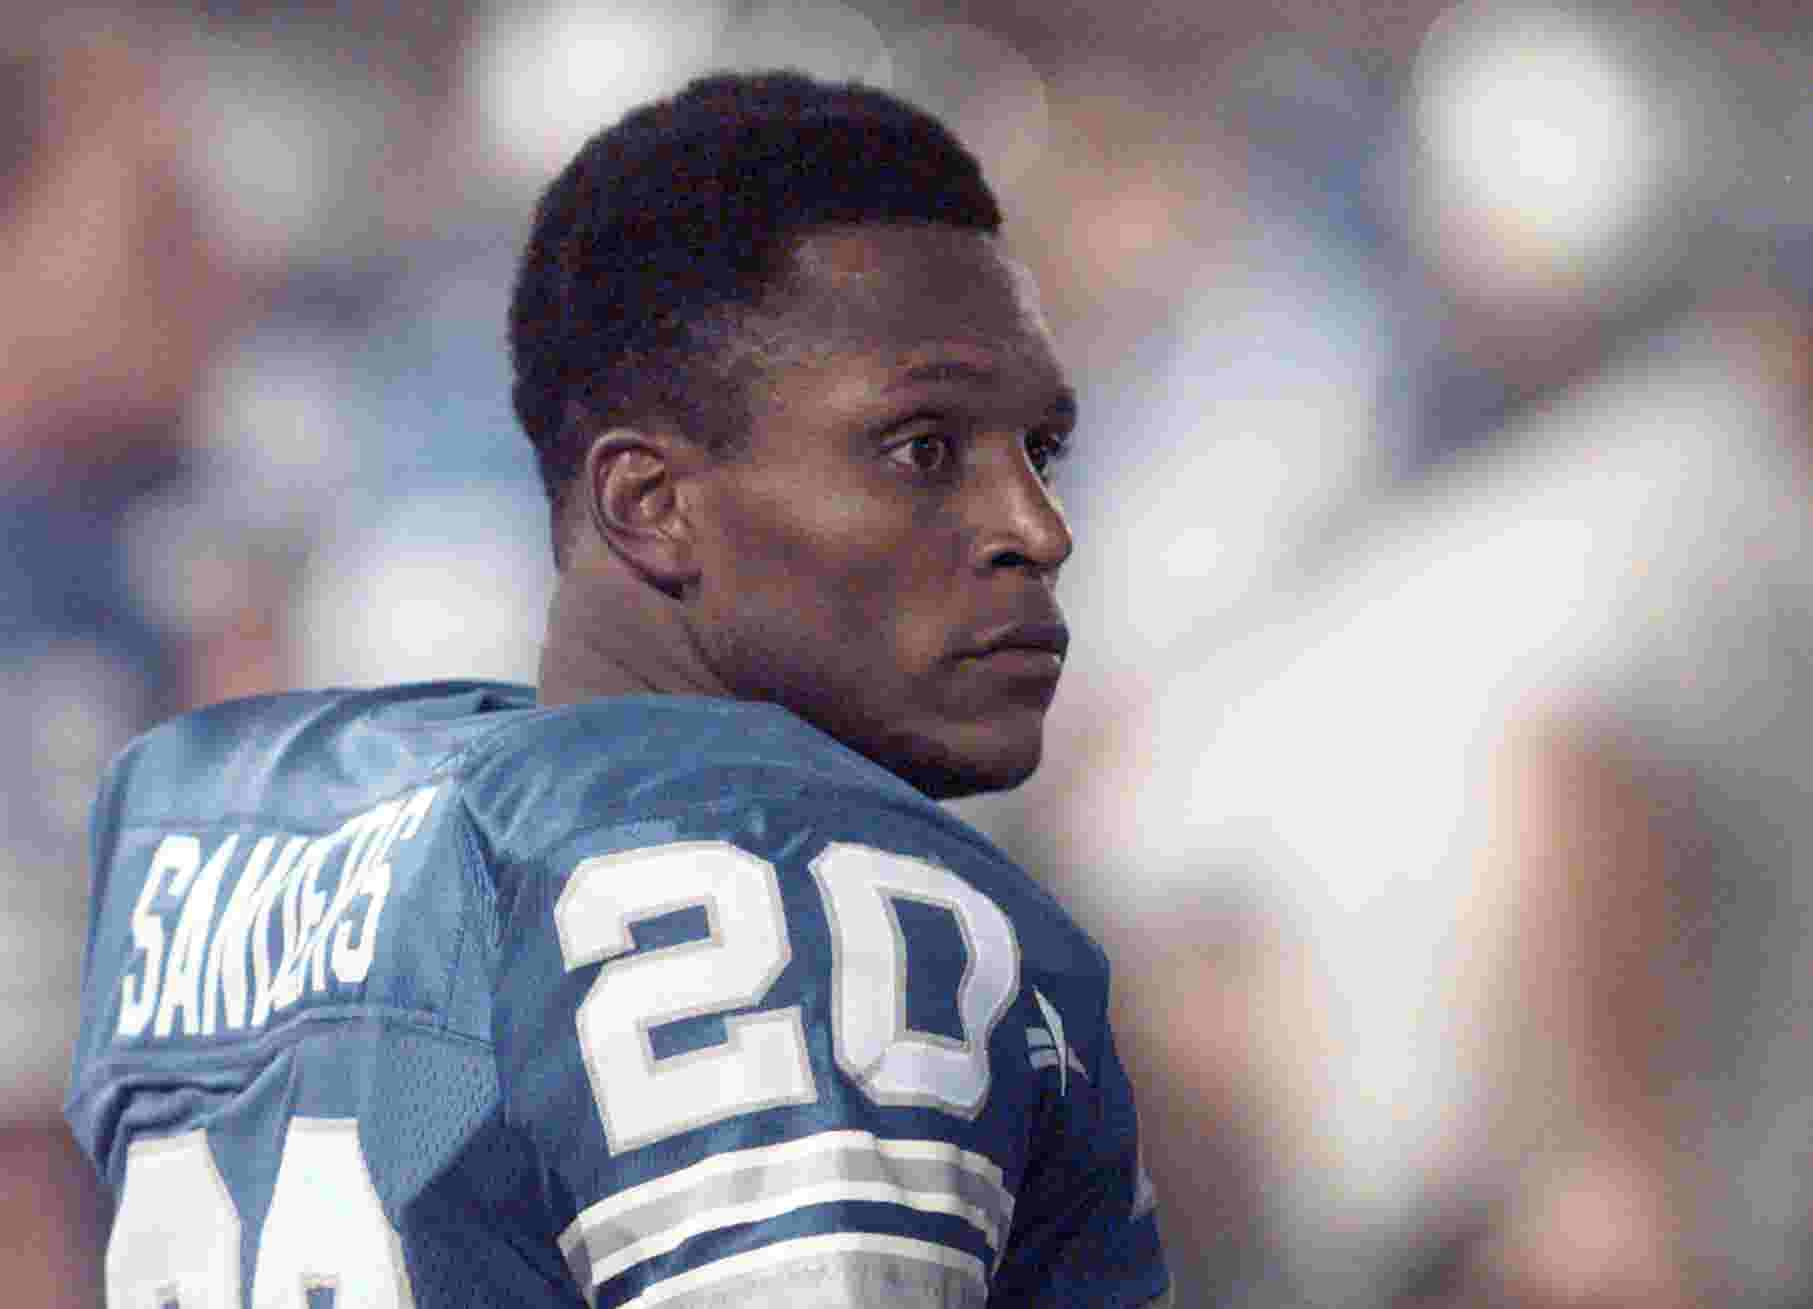 Nobody can match Barry Sanders' epic 10-year run. The numbers prove it